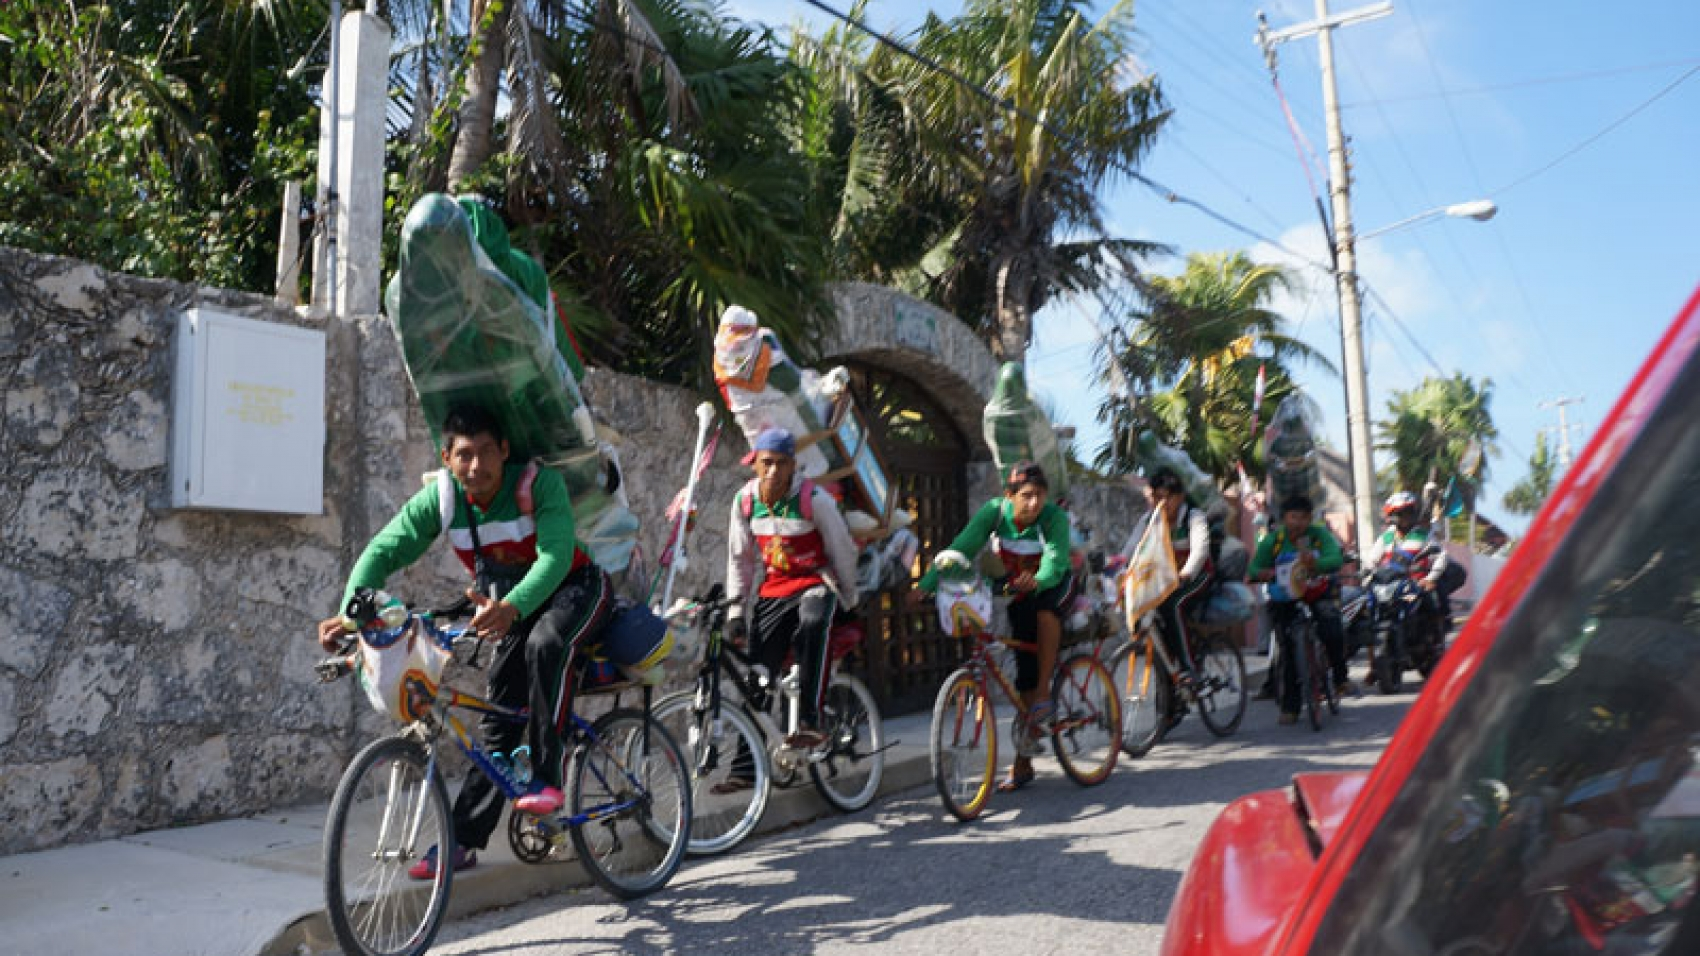 Locals carrying statues of Mary of Guadalupe on their back in preparation for the upcoming festival